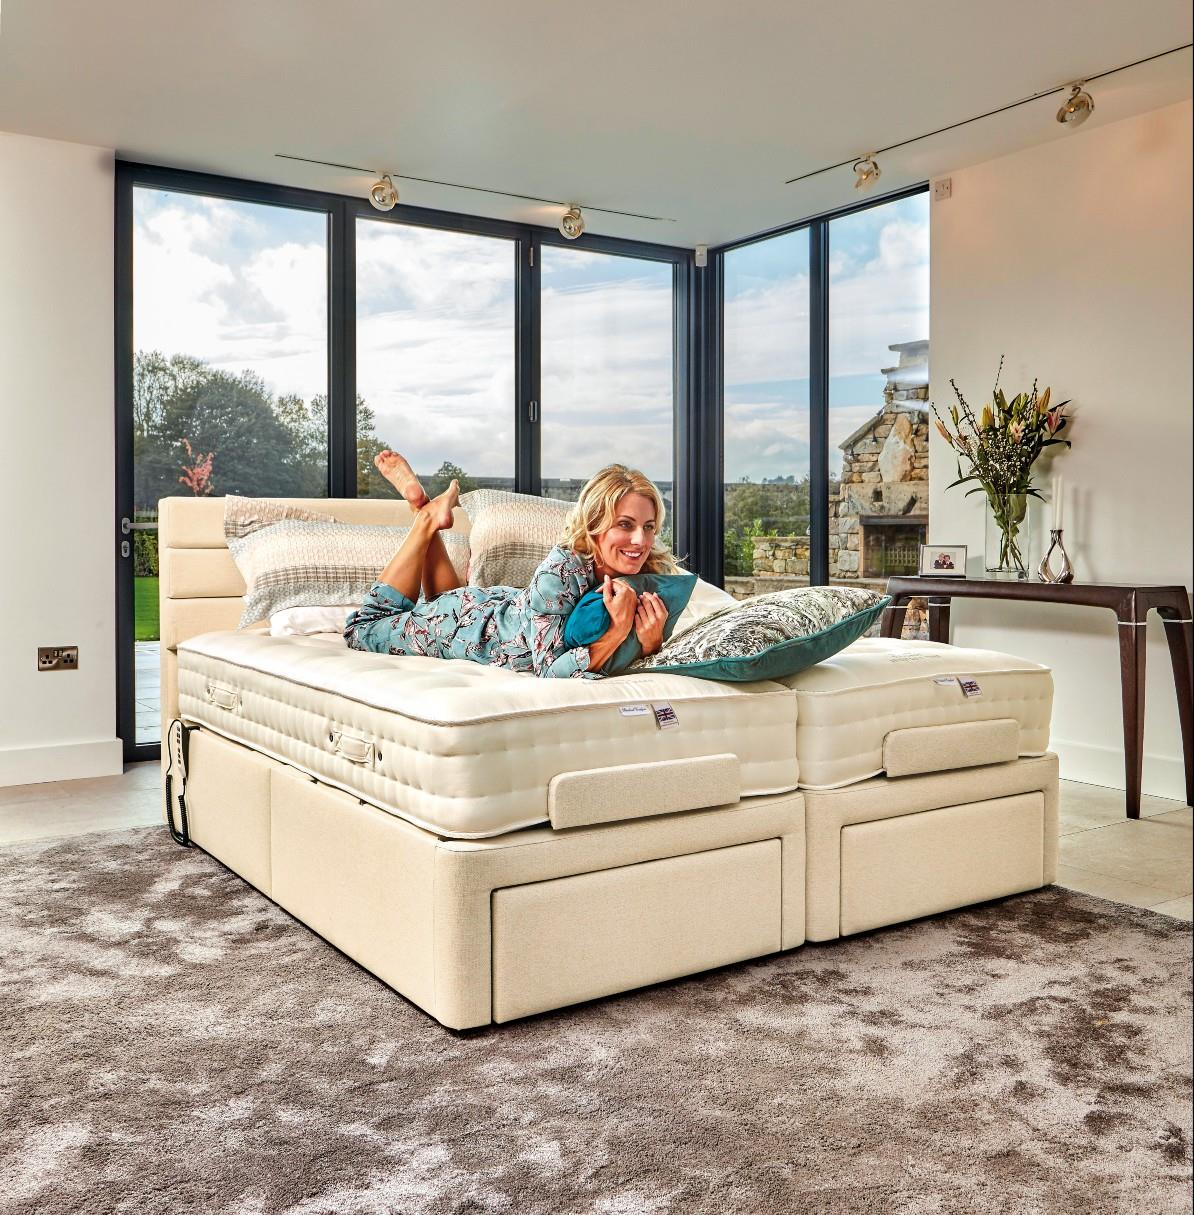 DORCHESTER Electric Adjustable Bed by Sherborne